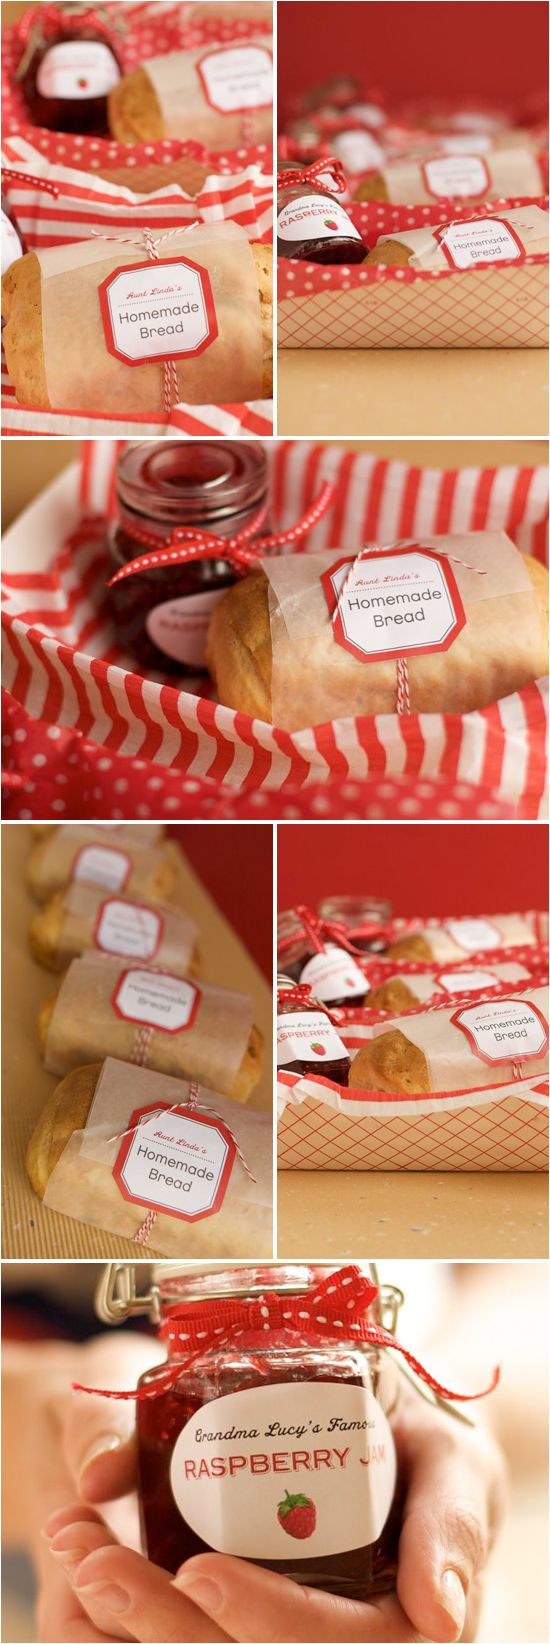 DIY Favors: Homemade Bread and Jam One of my favorite treats is jalapeño and raspberry jam, with cream cheese, on top of plain Ritz crackers. I wonder if I could do something like this...